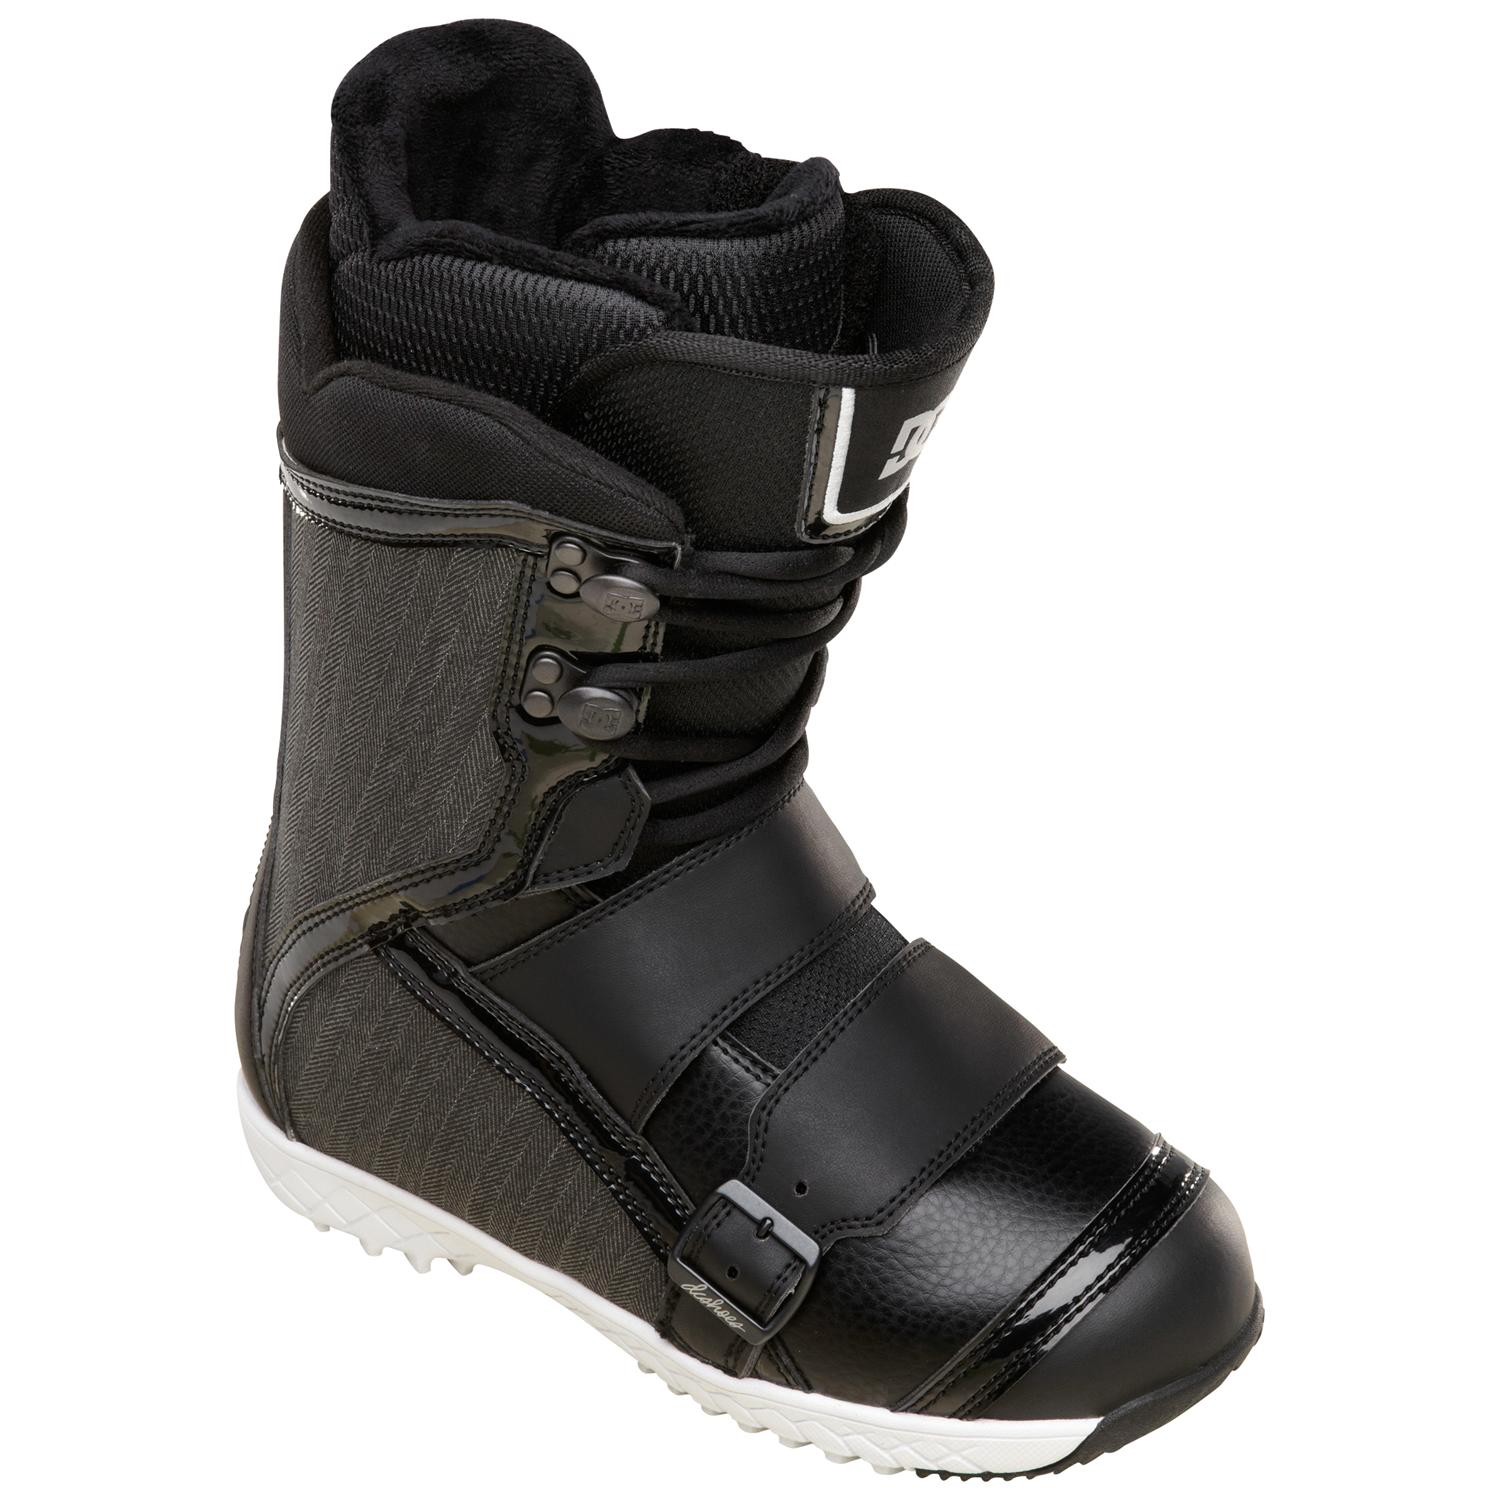 Womans Snowboard Boots 28 Images Thirtytwo S 86 Ft